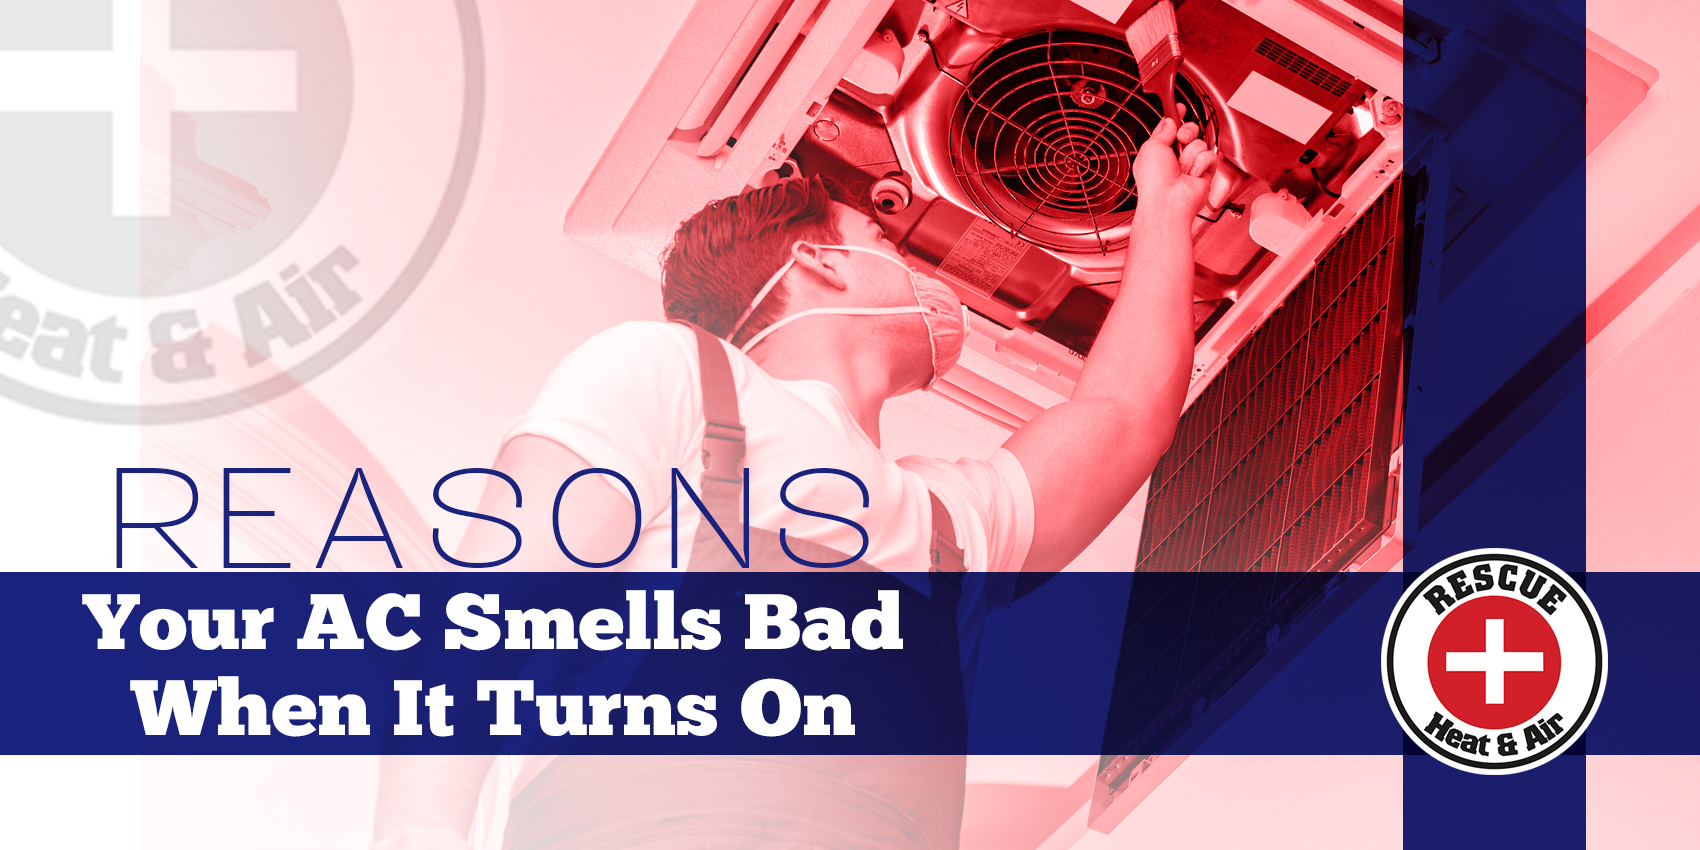 Reasons Your AC Smells Bad When It Turns On